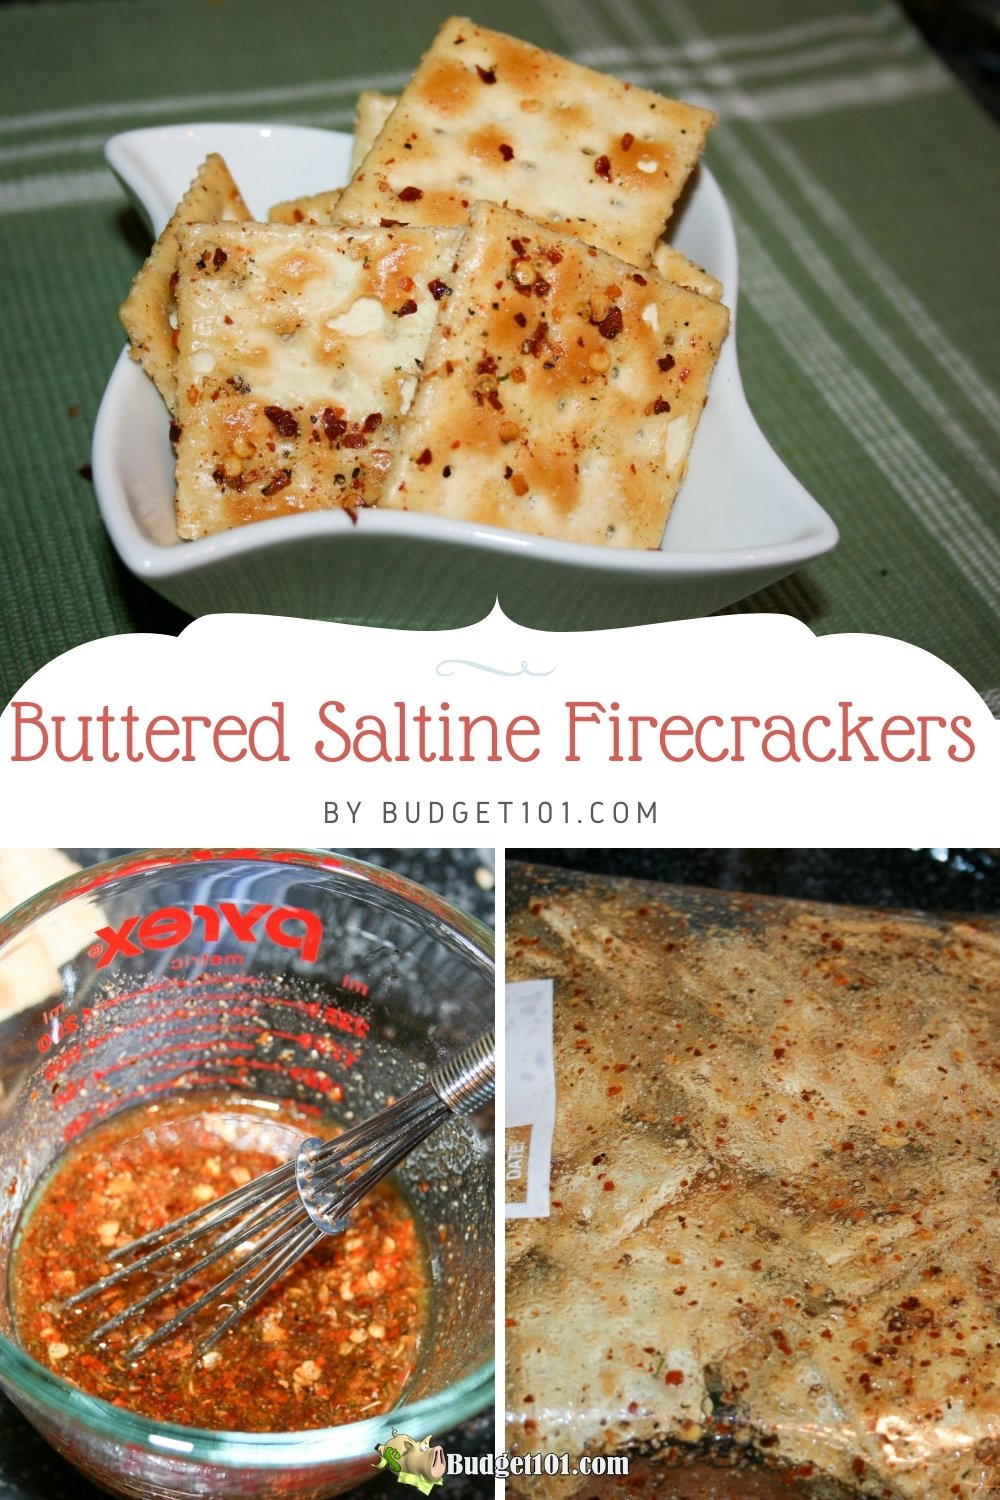 how to make easy buttered saltine firecrackers in 5 minutes flat #budget101 #butteredsaltines #Saltines #SaltineCrackers